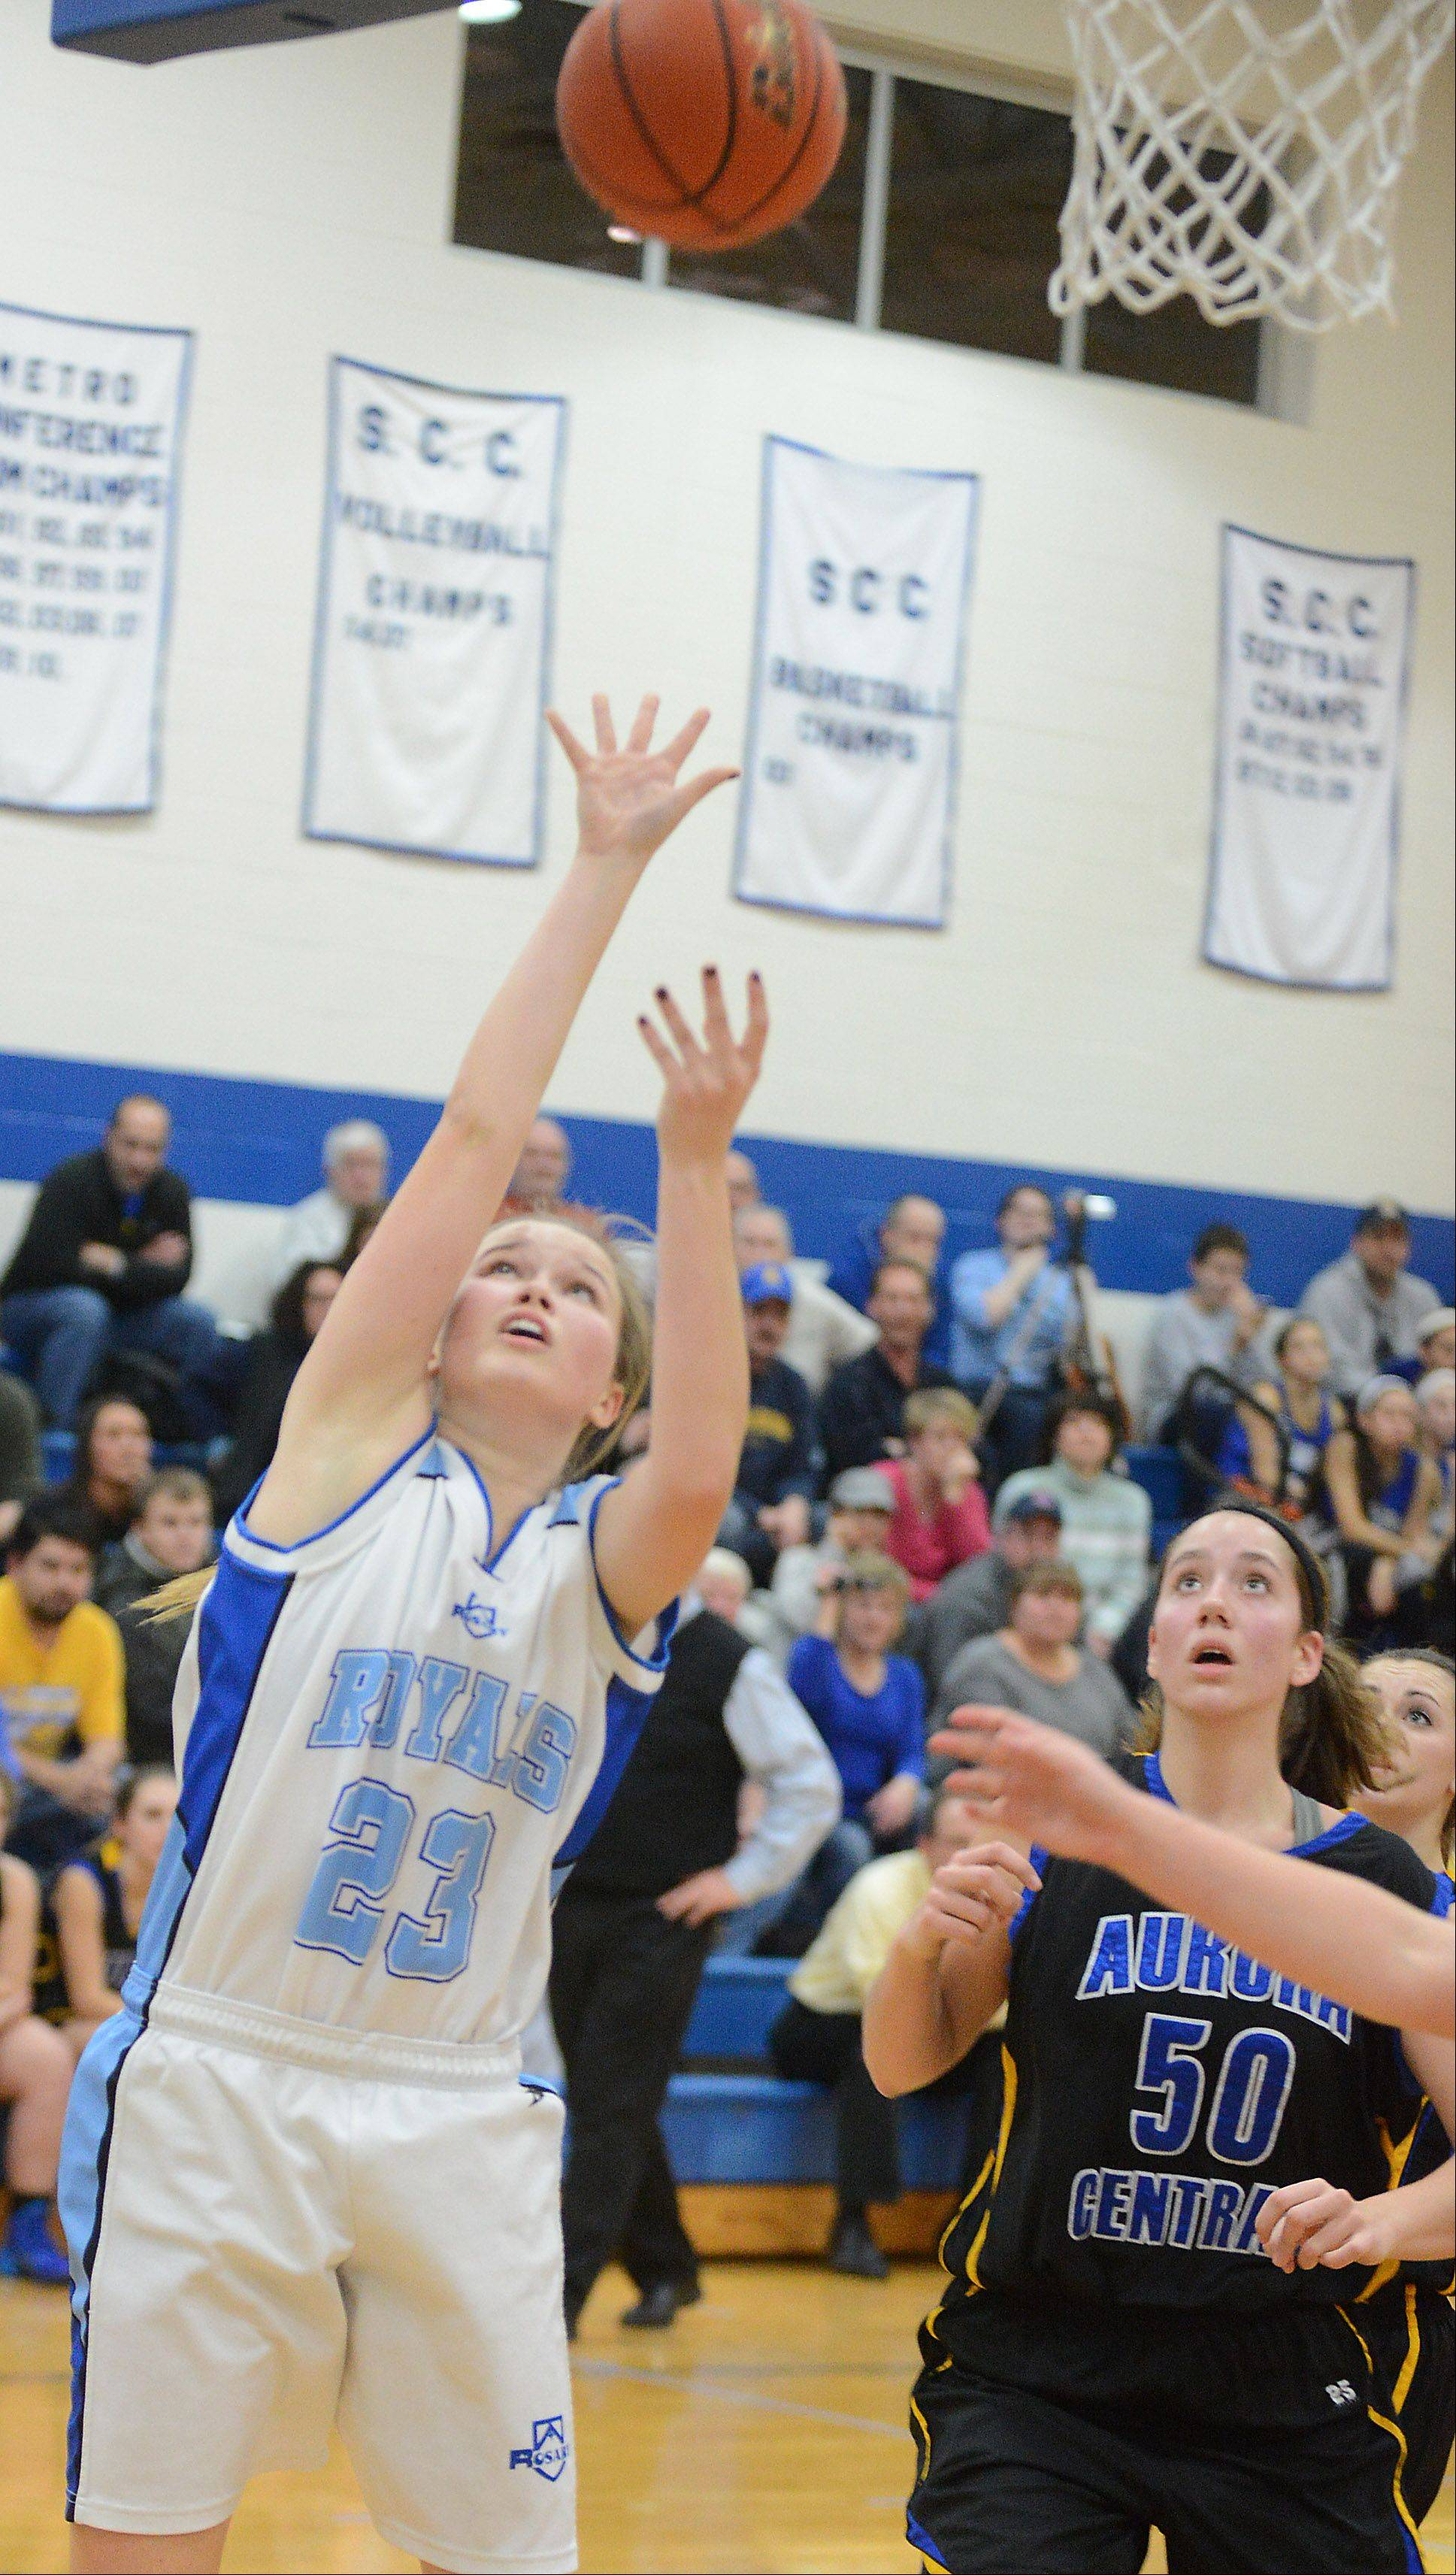 Images from the Aurora Central Catholic vs. Rosary girls basketball game Thursday, January 9, 2014.